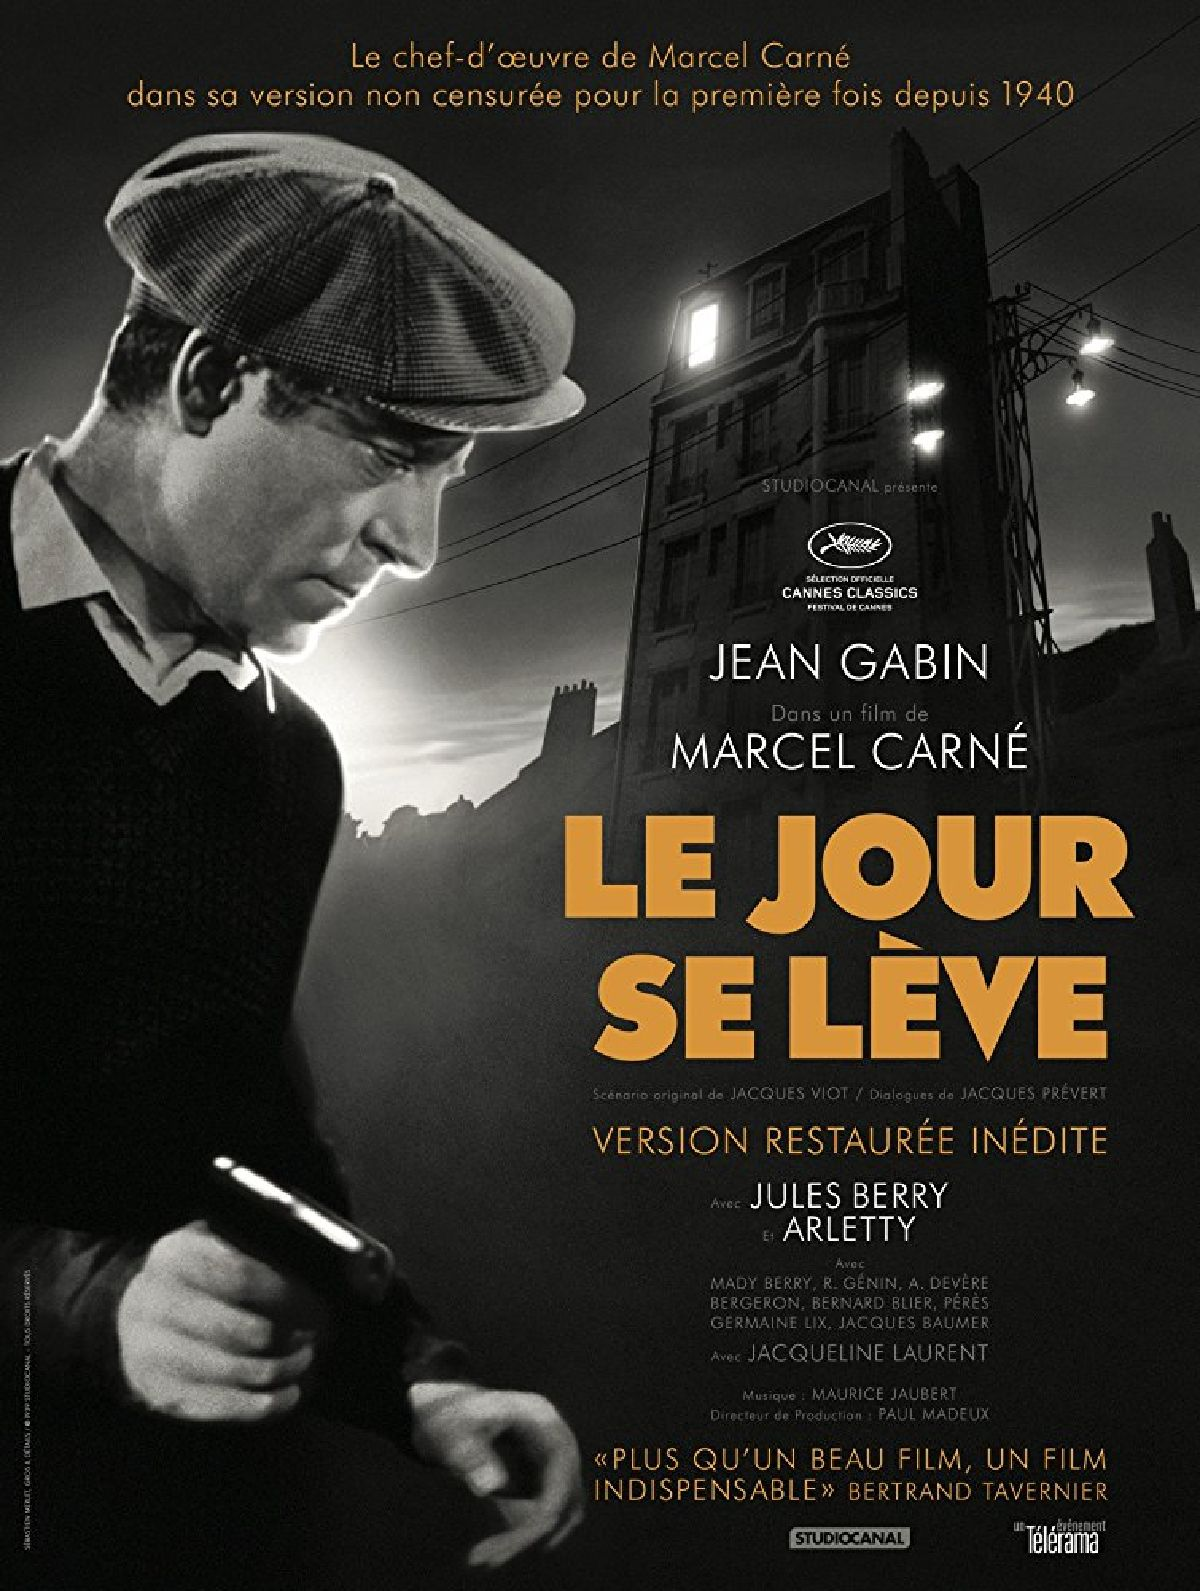 'Le Jour Se Leve' movie poster